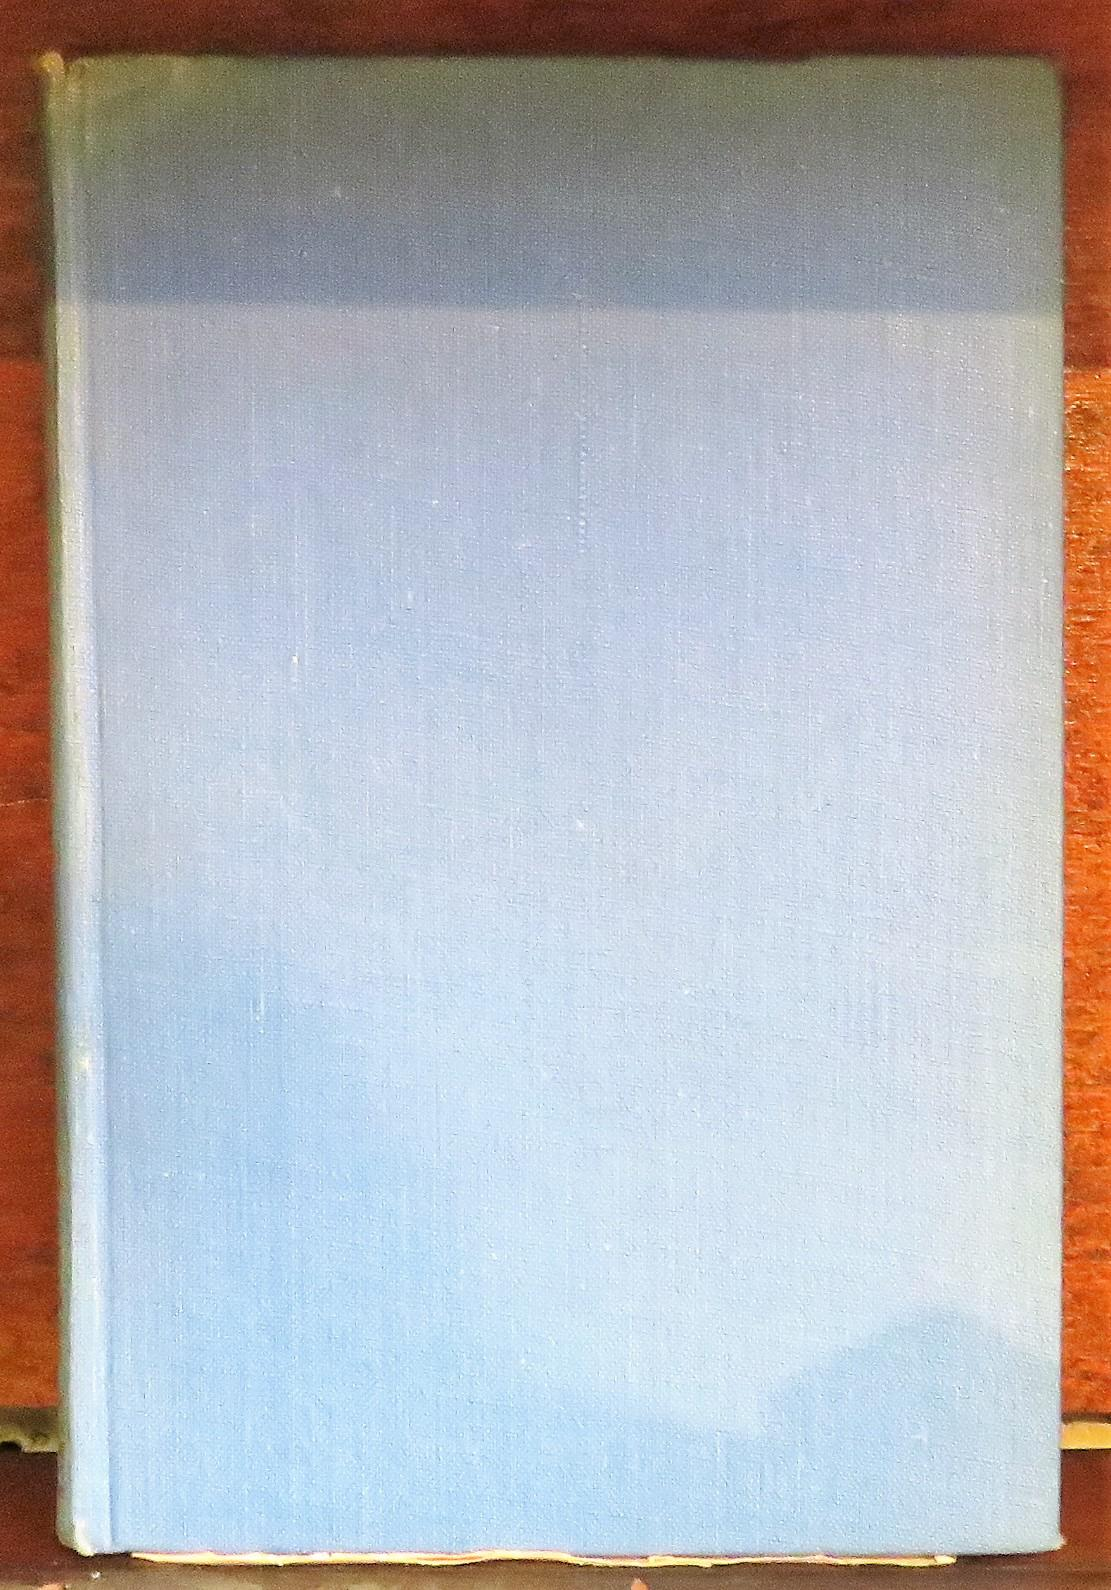 James Elroy Flecker Selected Poems